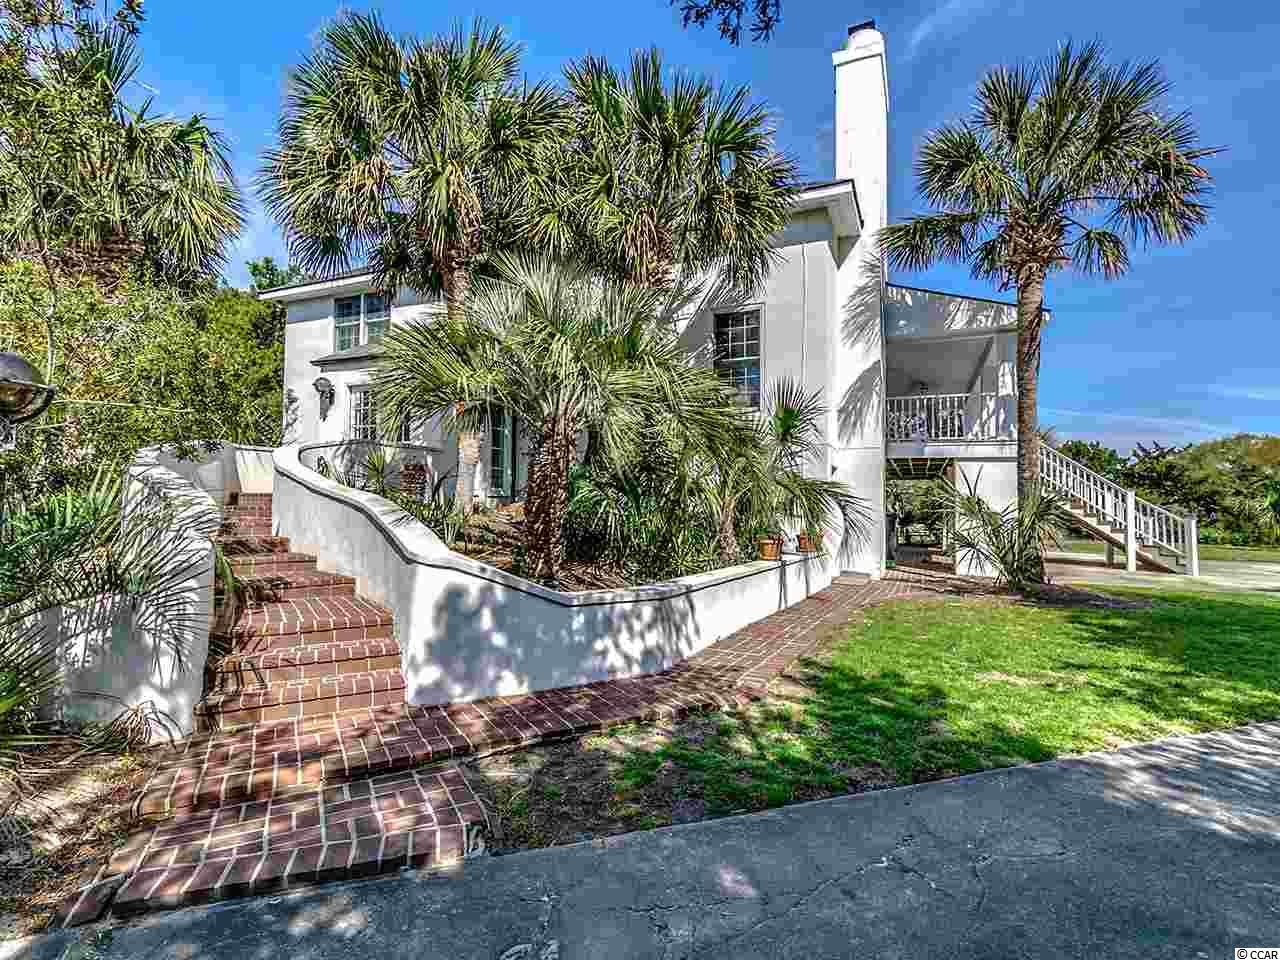 Island Community - Private 5 bedroom, 3 bath home with a great family feel on the canal and a block from the beach. This home features open living/dining room, wood burning fireplace, downstairs den/game room with both screened and open porches.  There is a crabbing dock on the canal, an outside shower and plenty of storage space for all of your beach toys.  DeBordieu Colony is a very private, oceanfront gated community located near Pawleys Island, South Carolina on the coast between Charleston and Myrtle Beach.